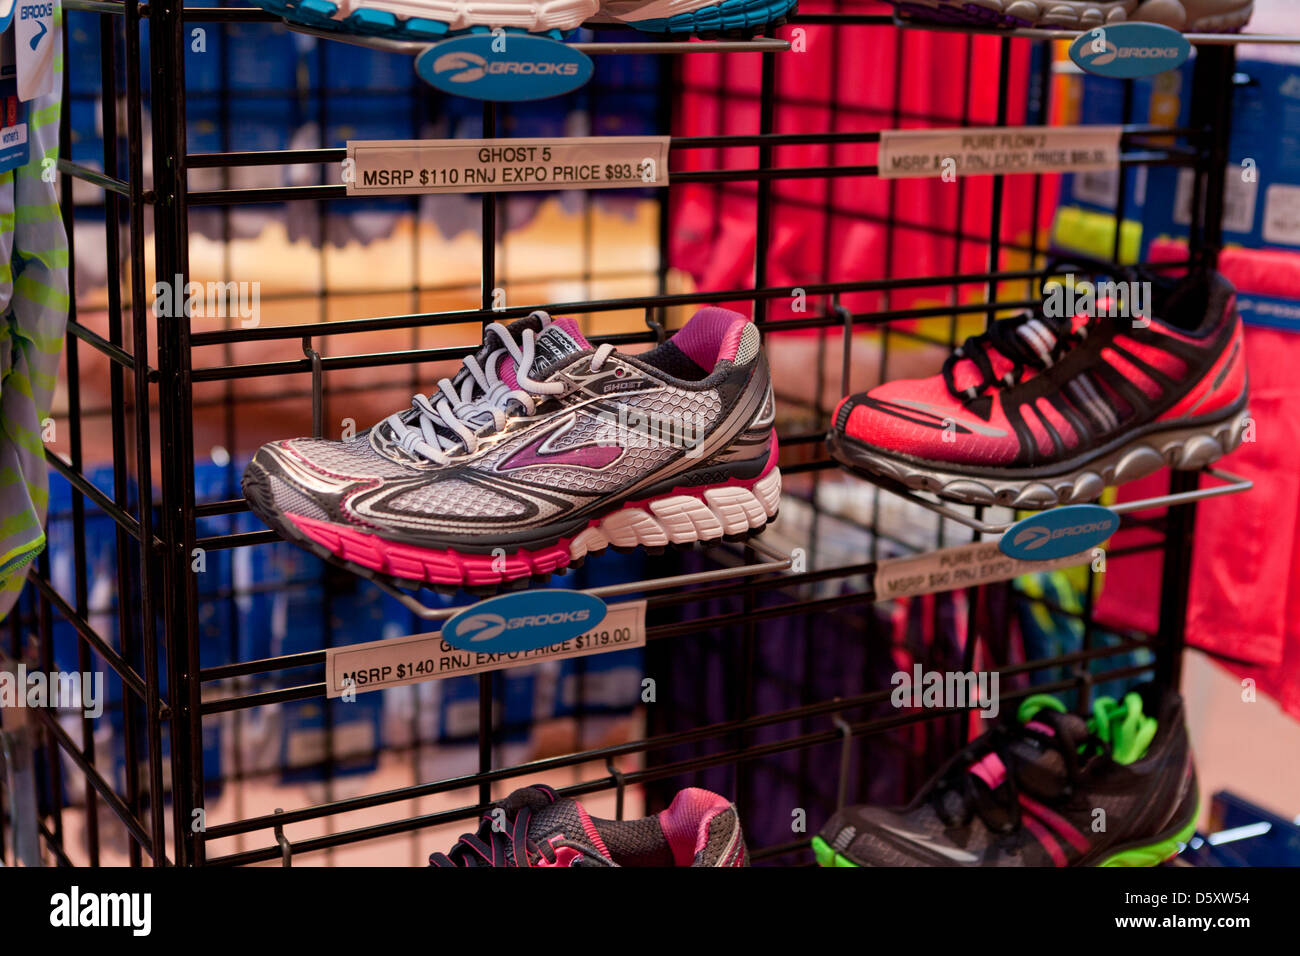 New running shoes on display Stock Photo